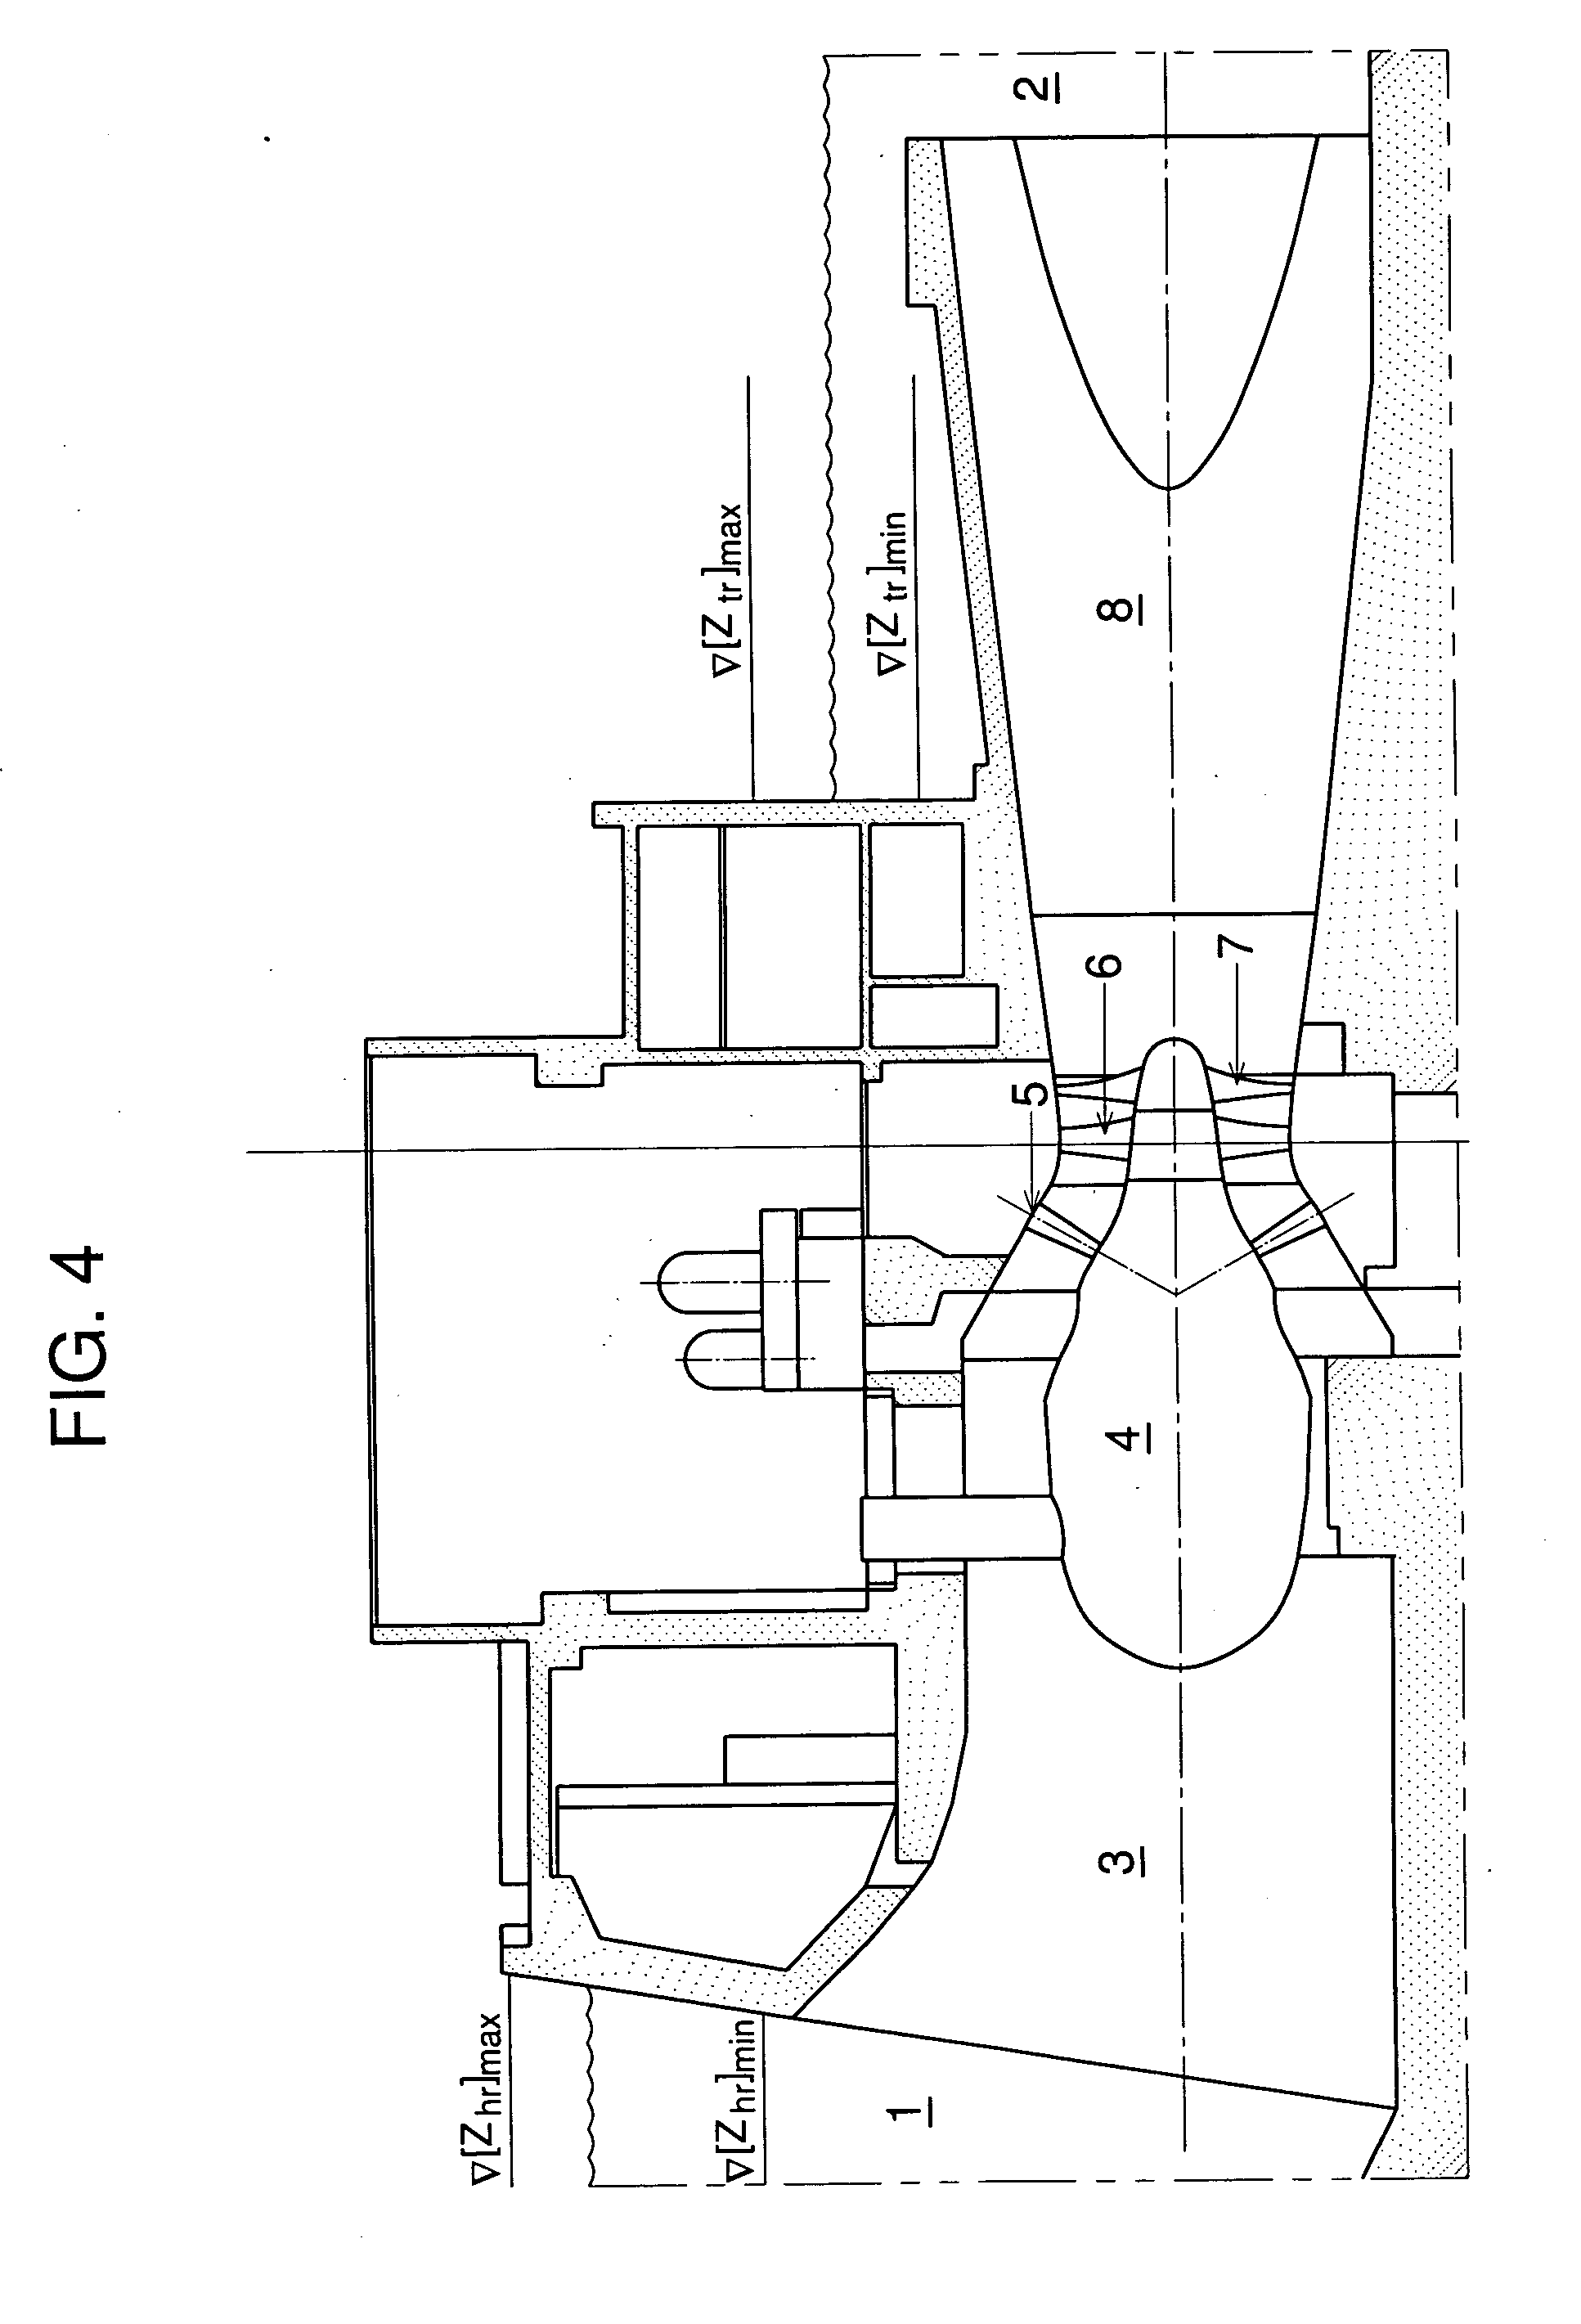 patent us20070231117 - two-way generation tidal power plant with one-way turbines